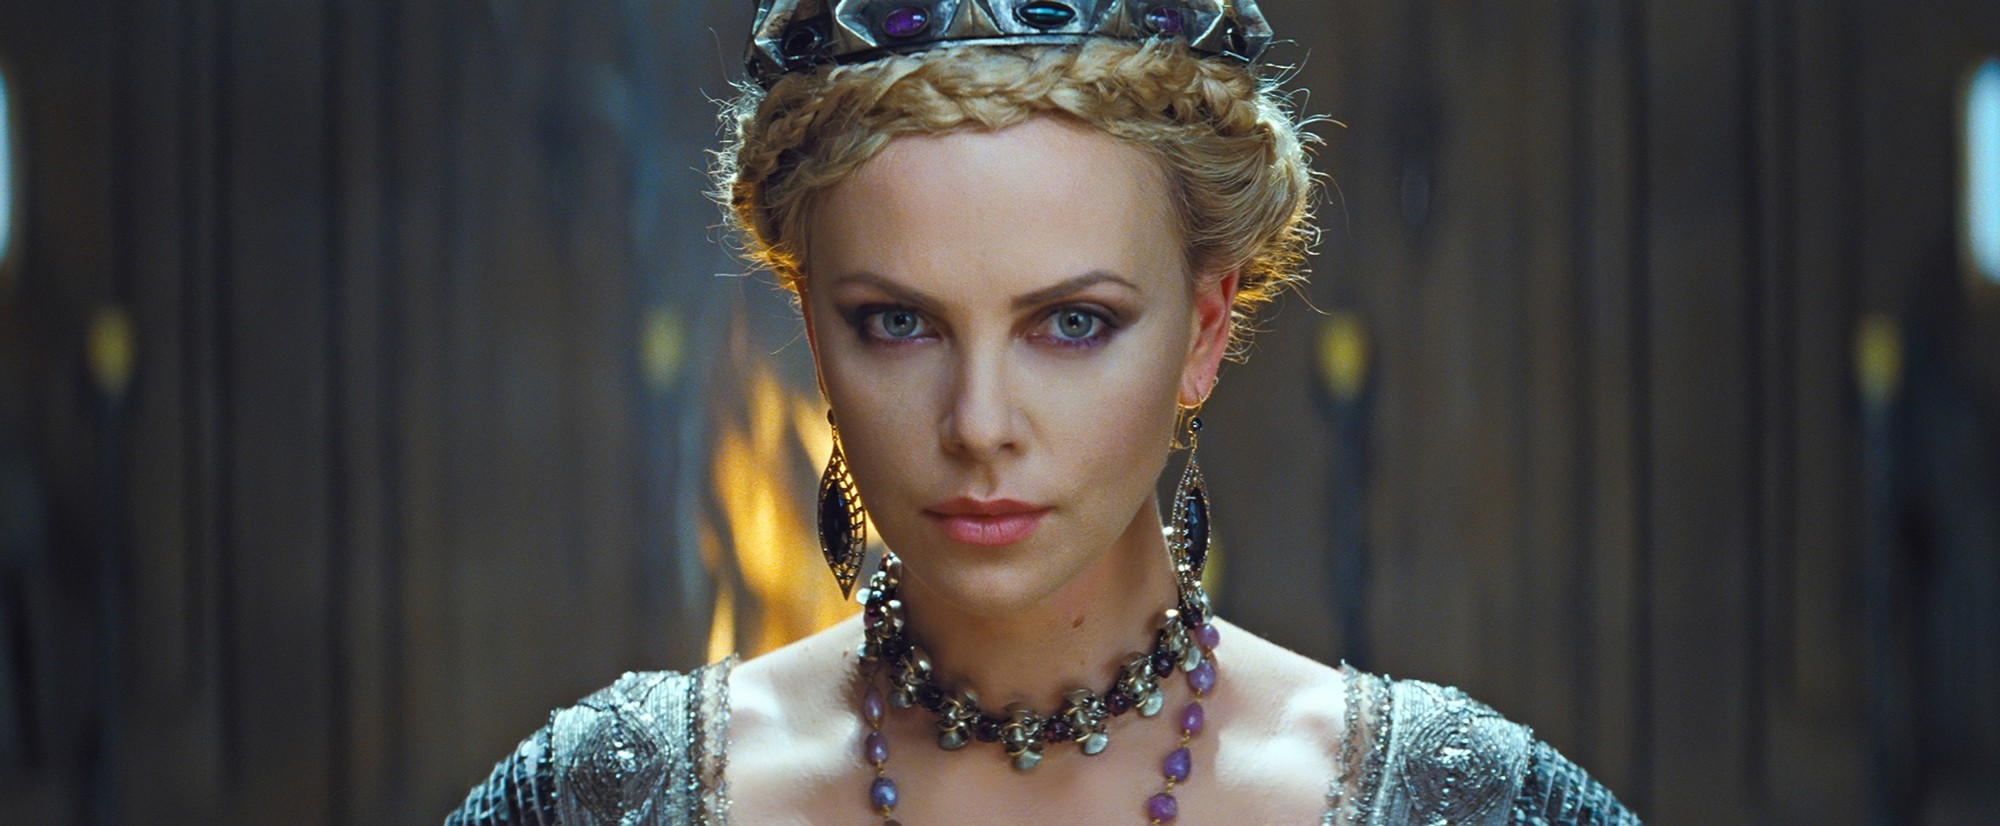 snow white huntsman braid crown hairstyle charlize theron